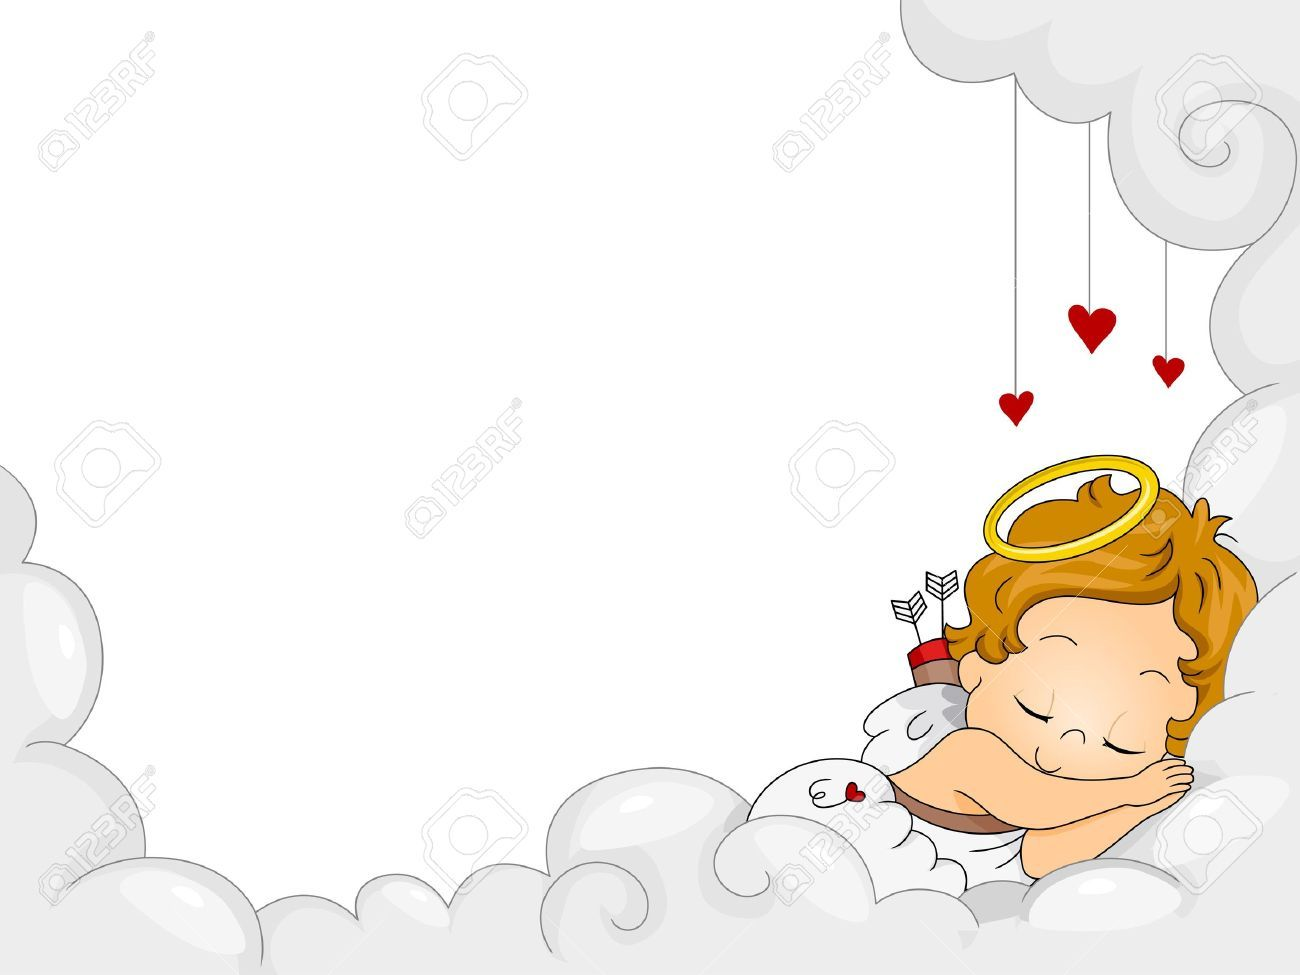 Sleeping baby angel clipart clip art black and white stock Sleeping baby angel clipart 8 » Clipart Portal clip art black and white stock